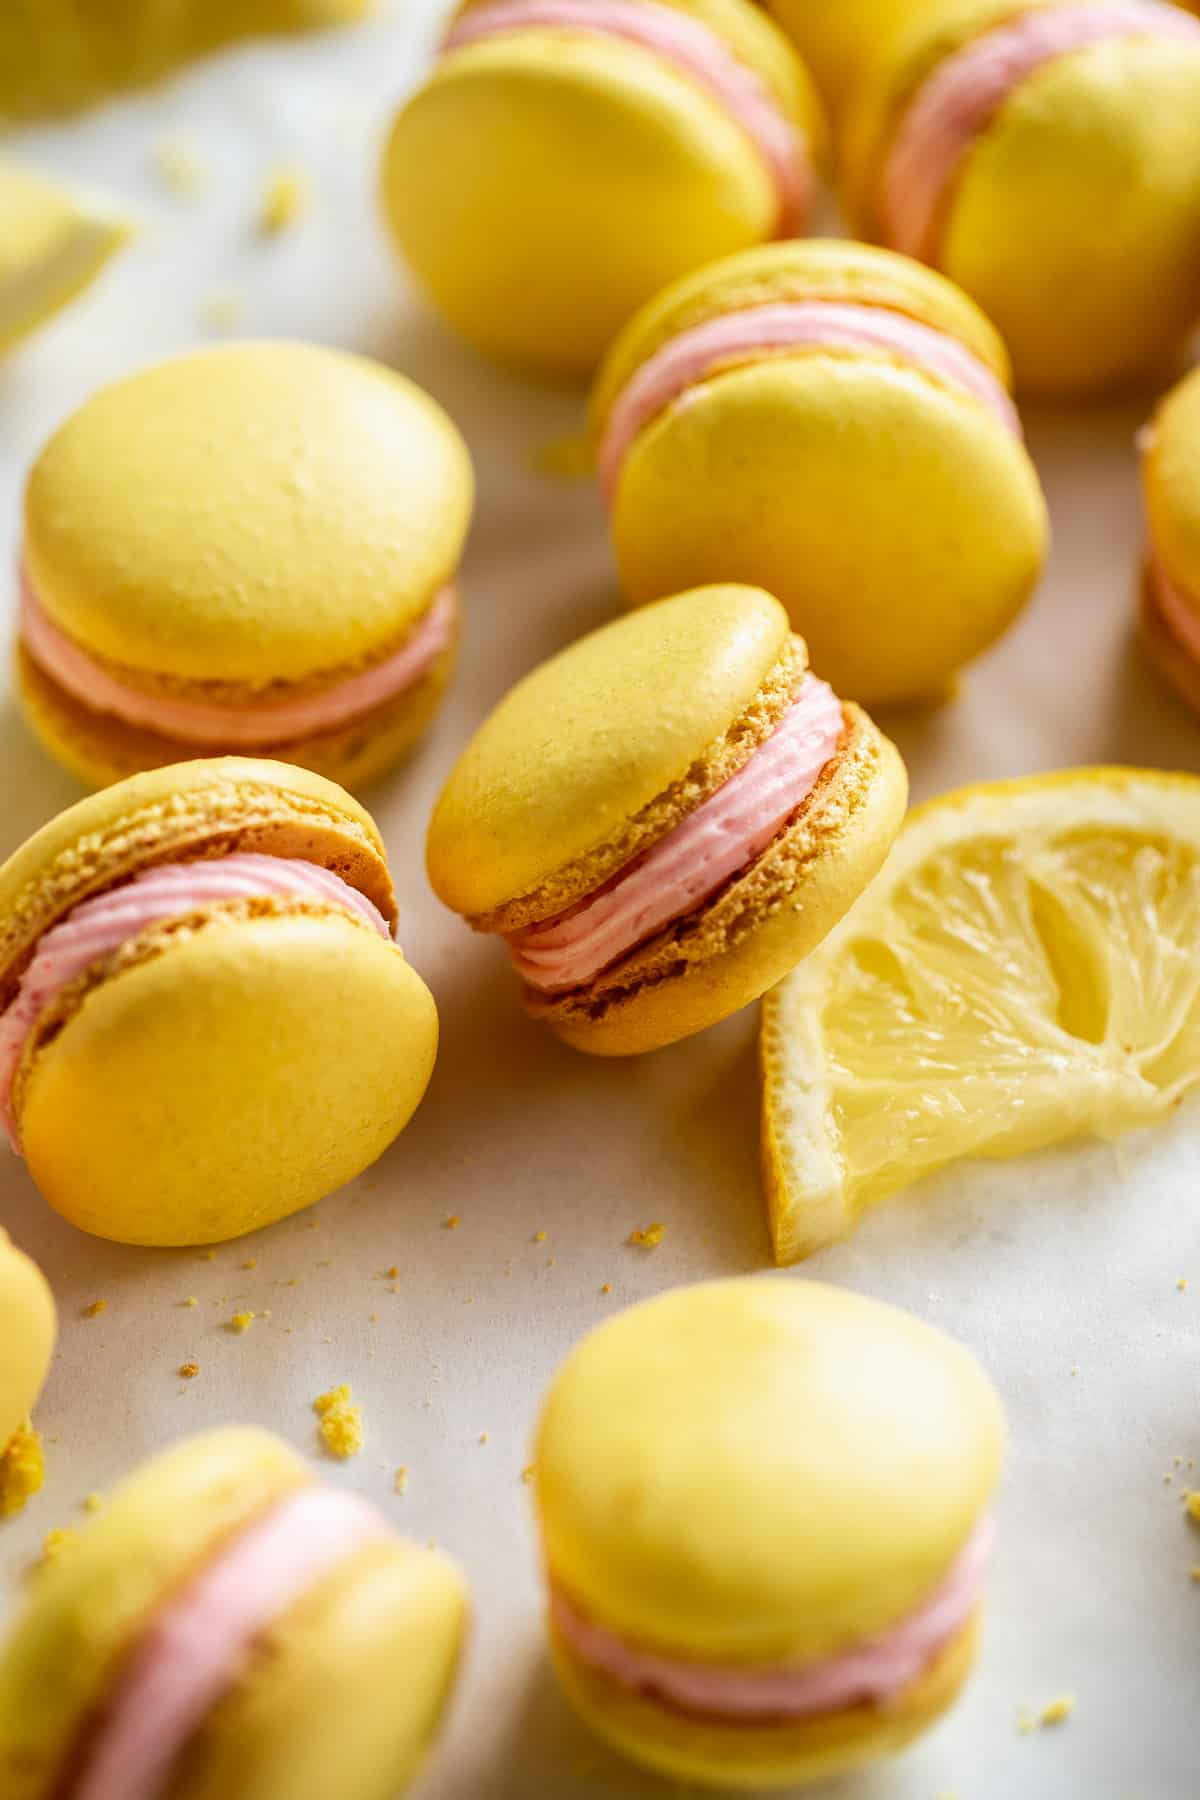 Lemonade macarons with pink icing scattered on surface with a lemon.